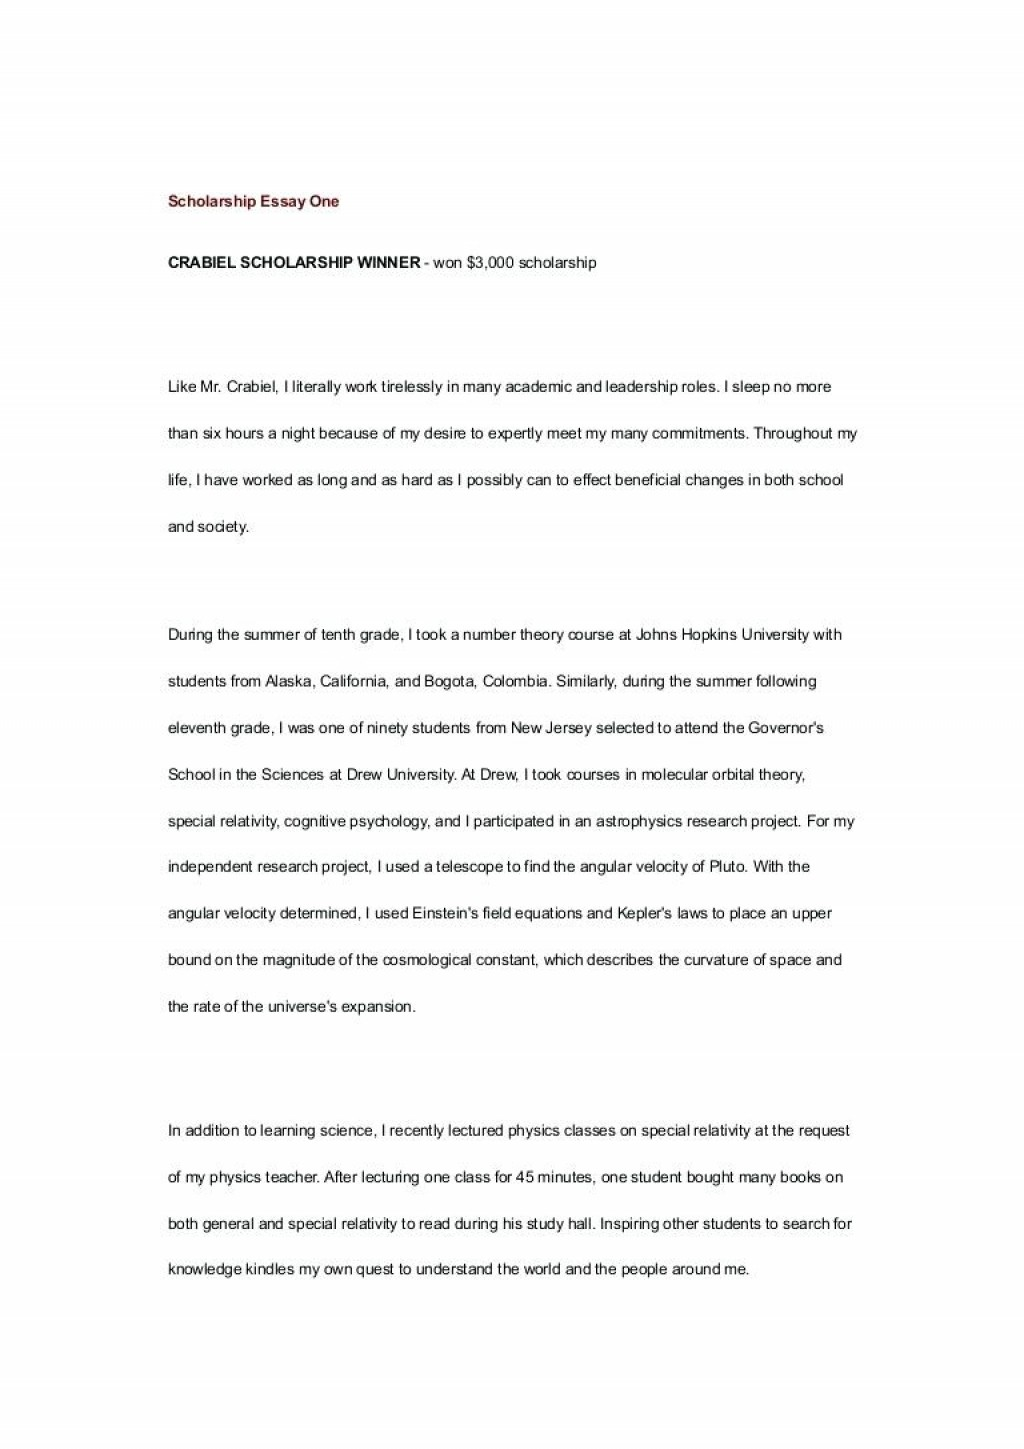 021 Essay Example College Scholarship Application Template No Legit Resume Cover Letter Thumbnail For Sample Format Exceptional Scholarships Undergraduates High School Seniors Students 2019 Large